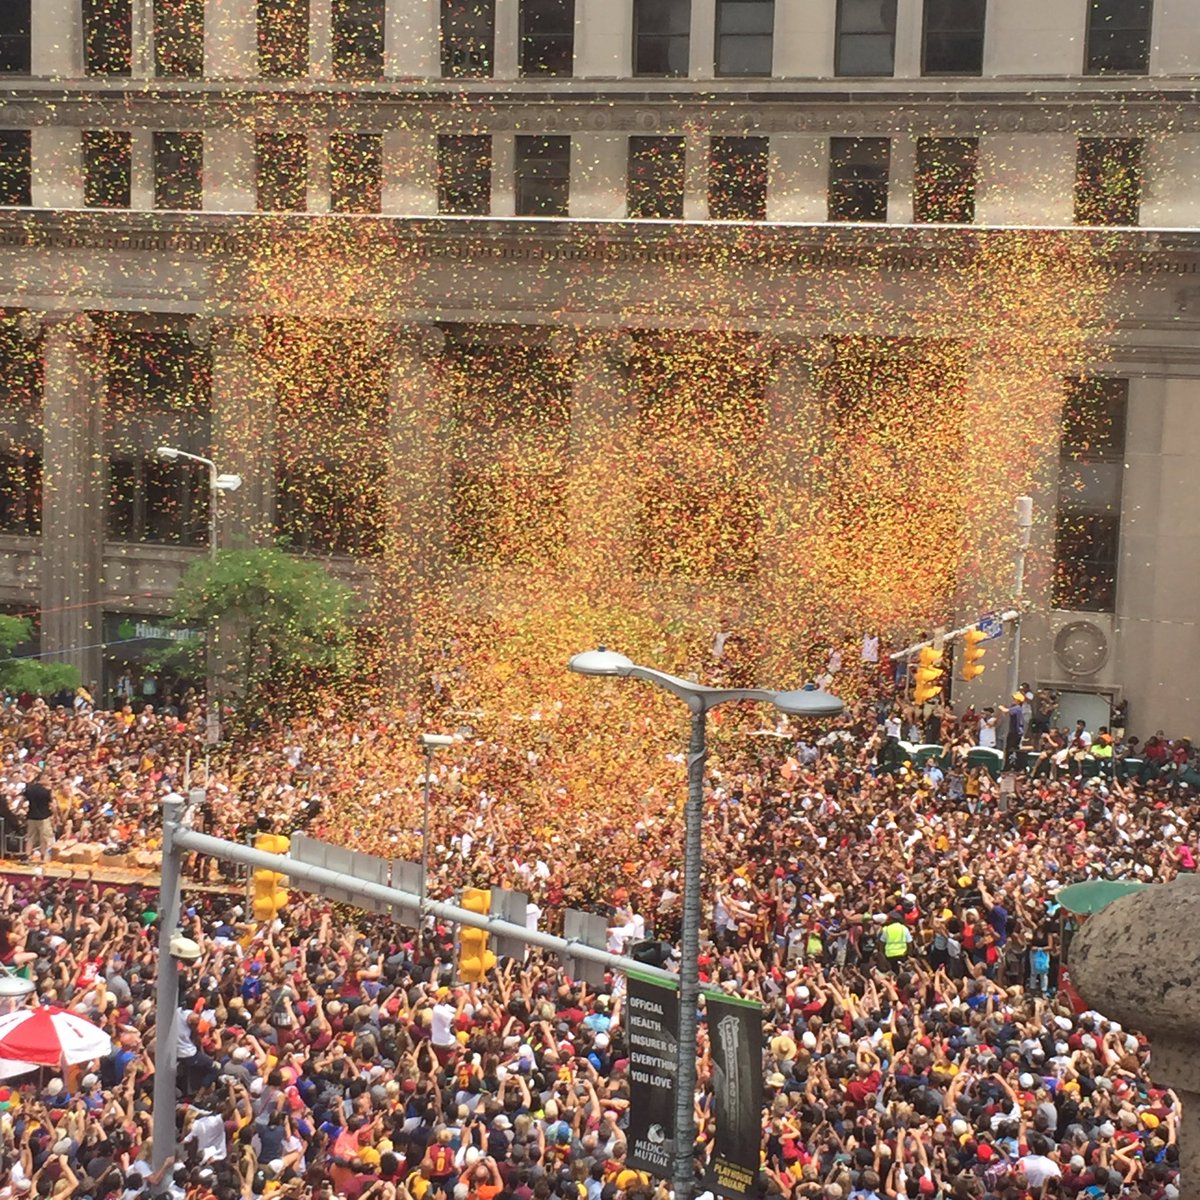 The confetti takes on human form of a #Cleveland fan raising arms in victory of the greatest team ever #ALLin216 https://t.co/OZPd1VnALw